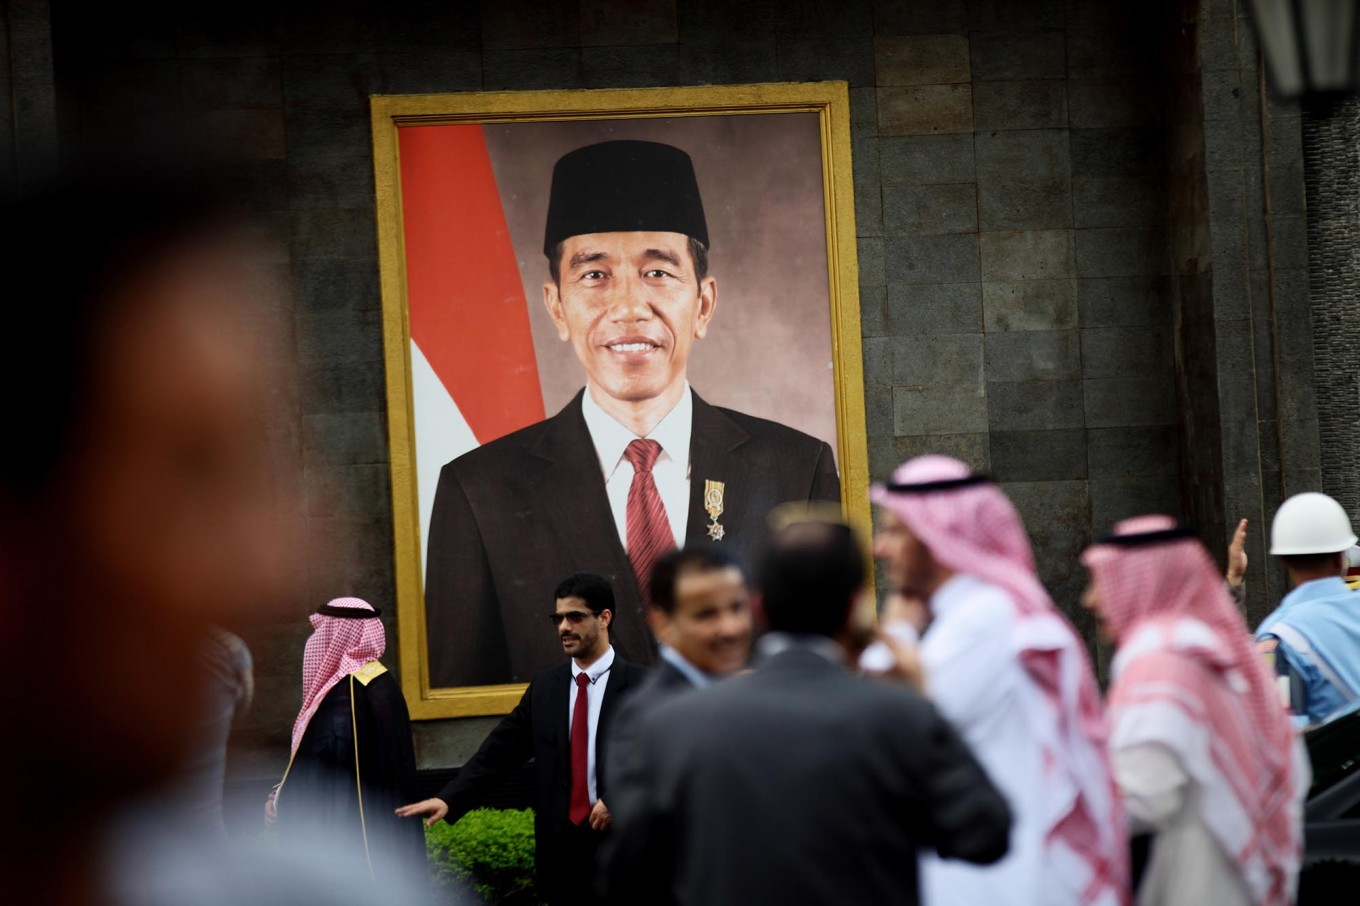 Members of King Salman's entourage are busy preparing for the arrival of their monarch at Halim Perdanakusuma Airport, Jakarta, on Wednesday. JP/Dhoni Setiawan